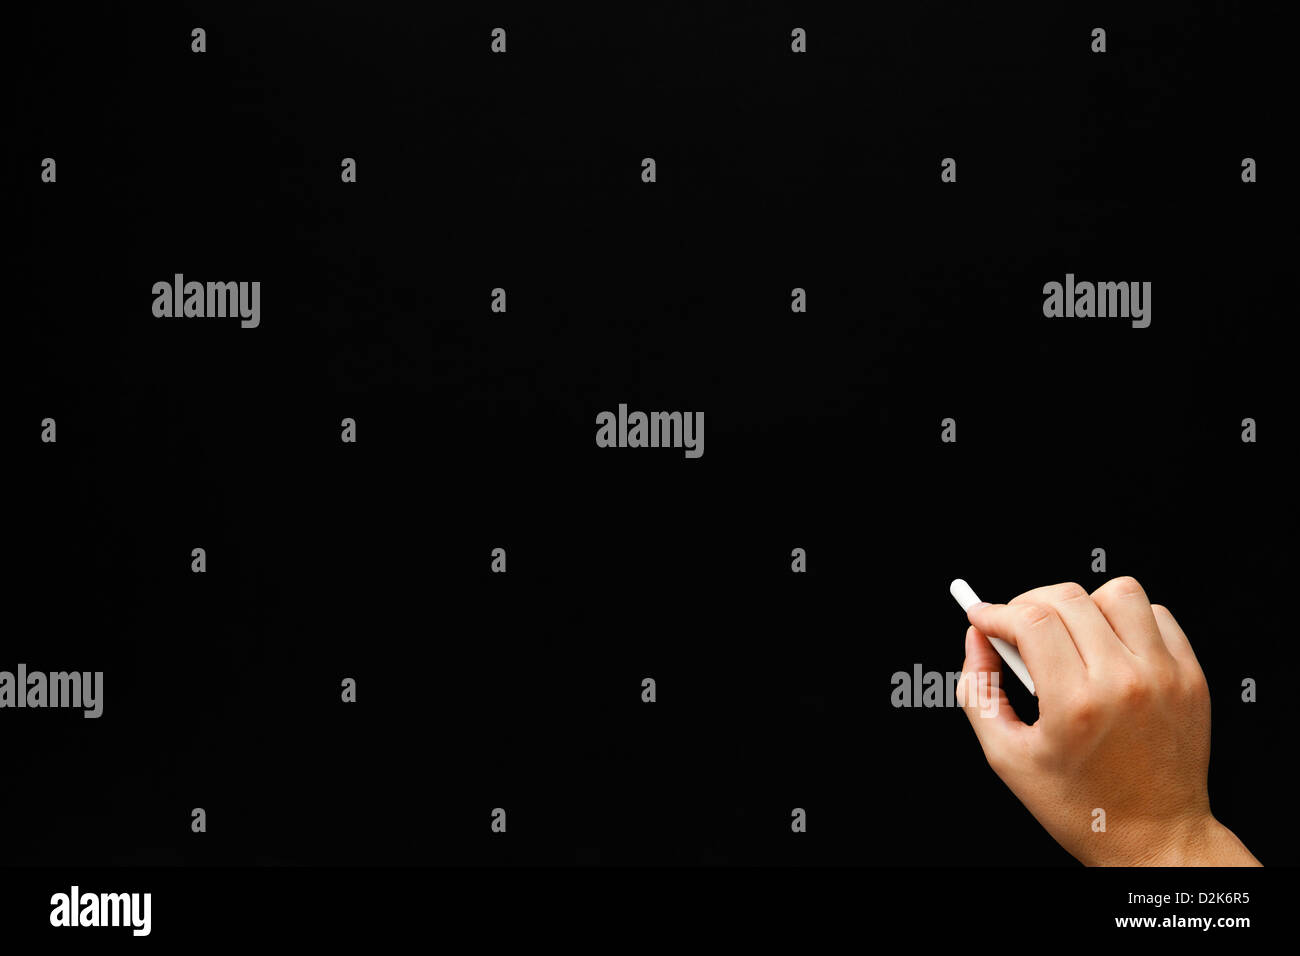 Hand writing something with white chalk on a blank blackboard. - Stock Image